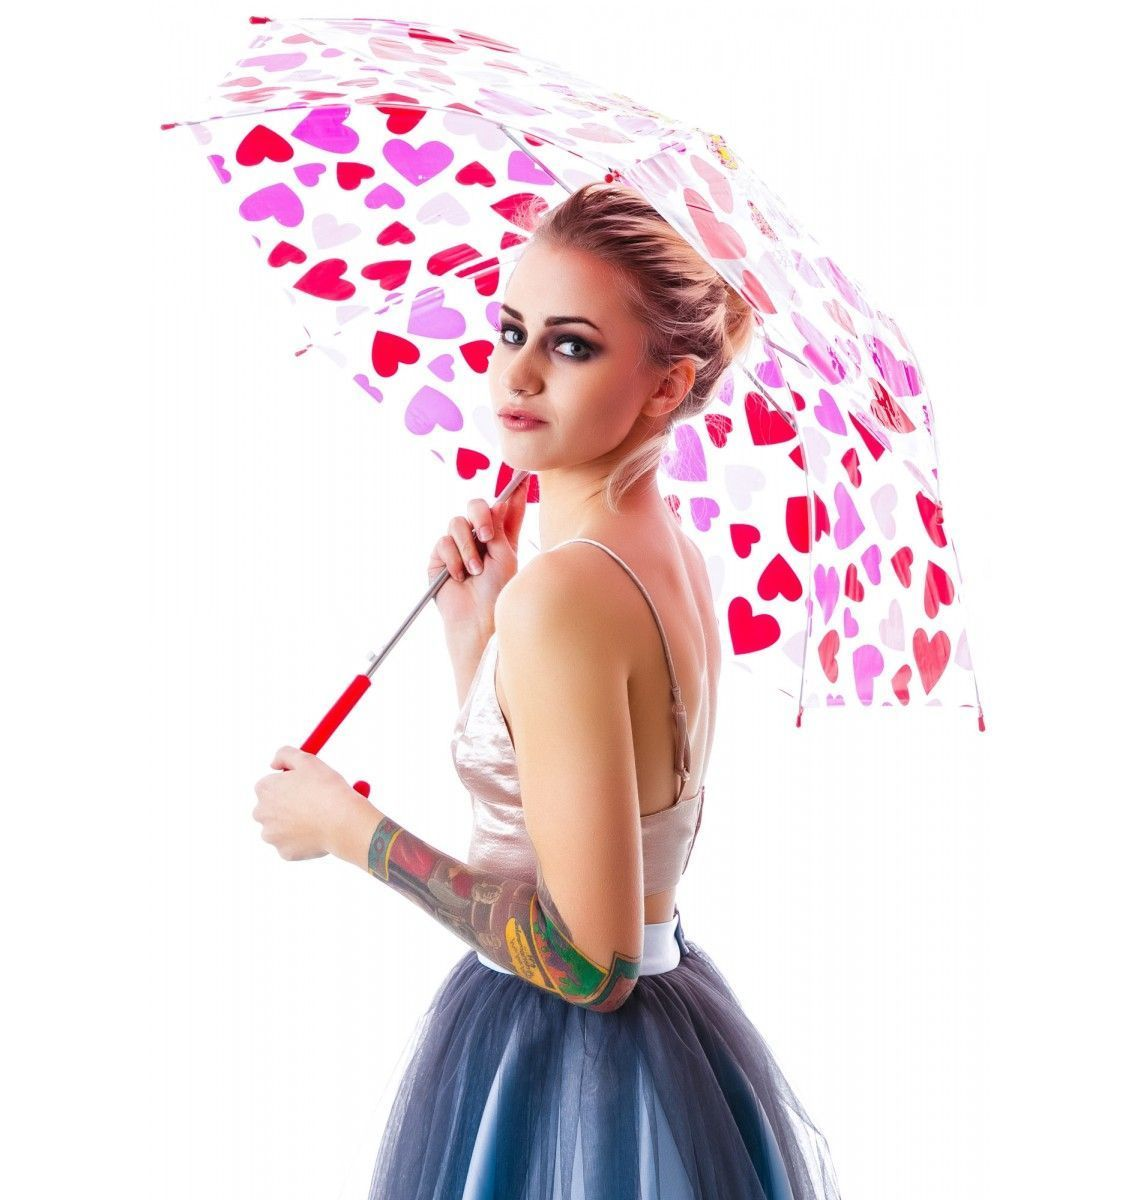 Raining Hearts Clear Umbrella #clearumbrella Hollywood Mirror Raining Hearts Clear Umbrella #clearumbrella Raining Hearts Clear Umbrella #clearumbrella Hollywood Mirror Raining Hearts Clear Umbrella #clearumbrella